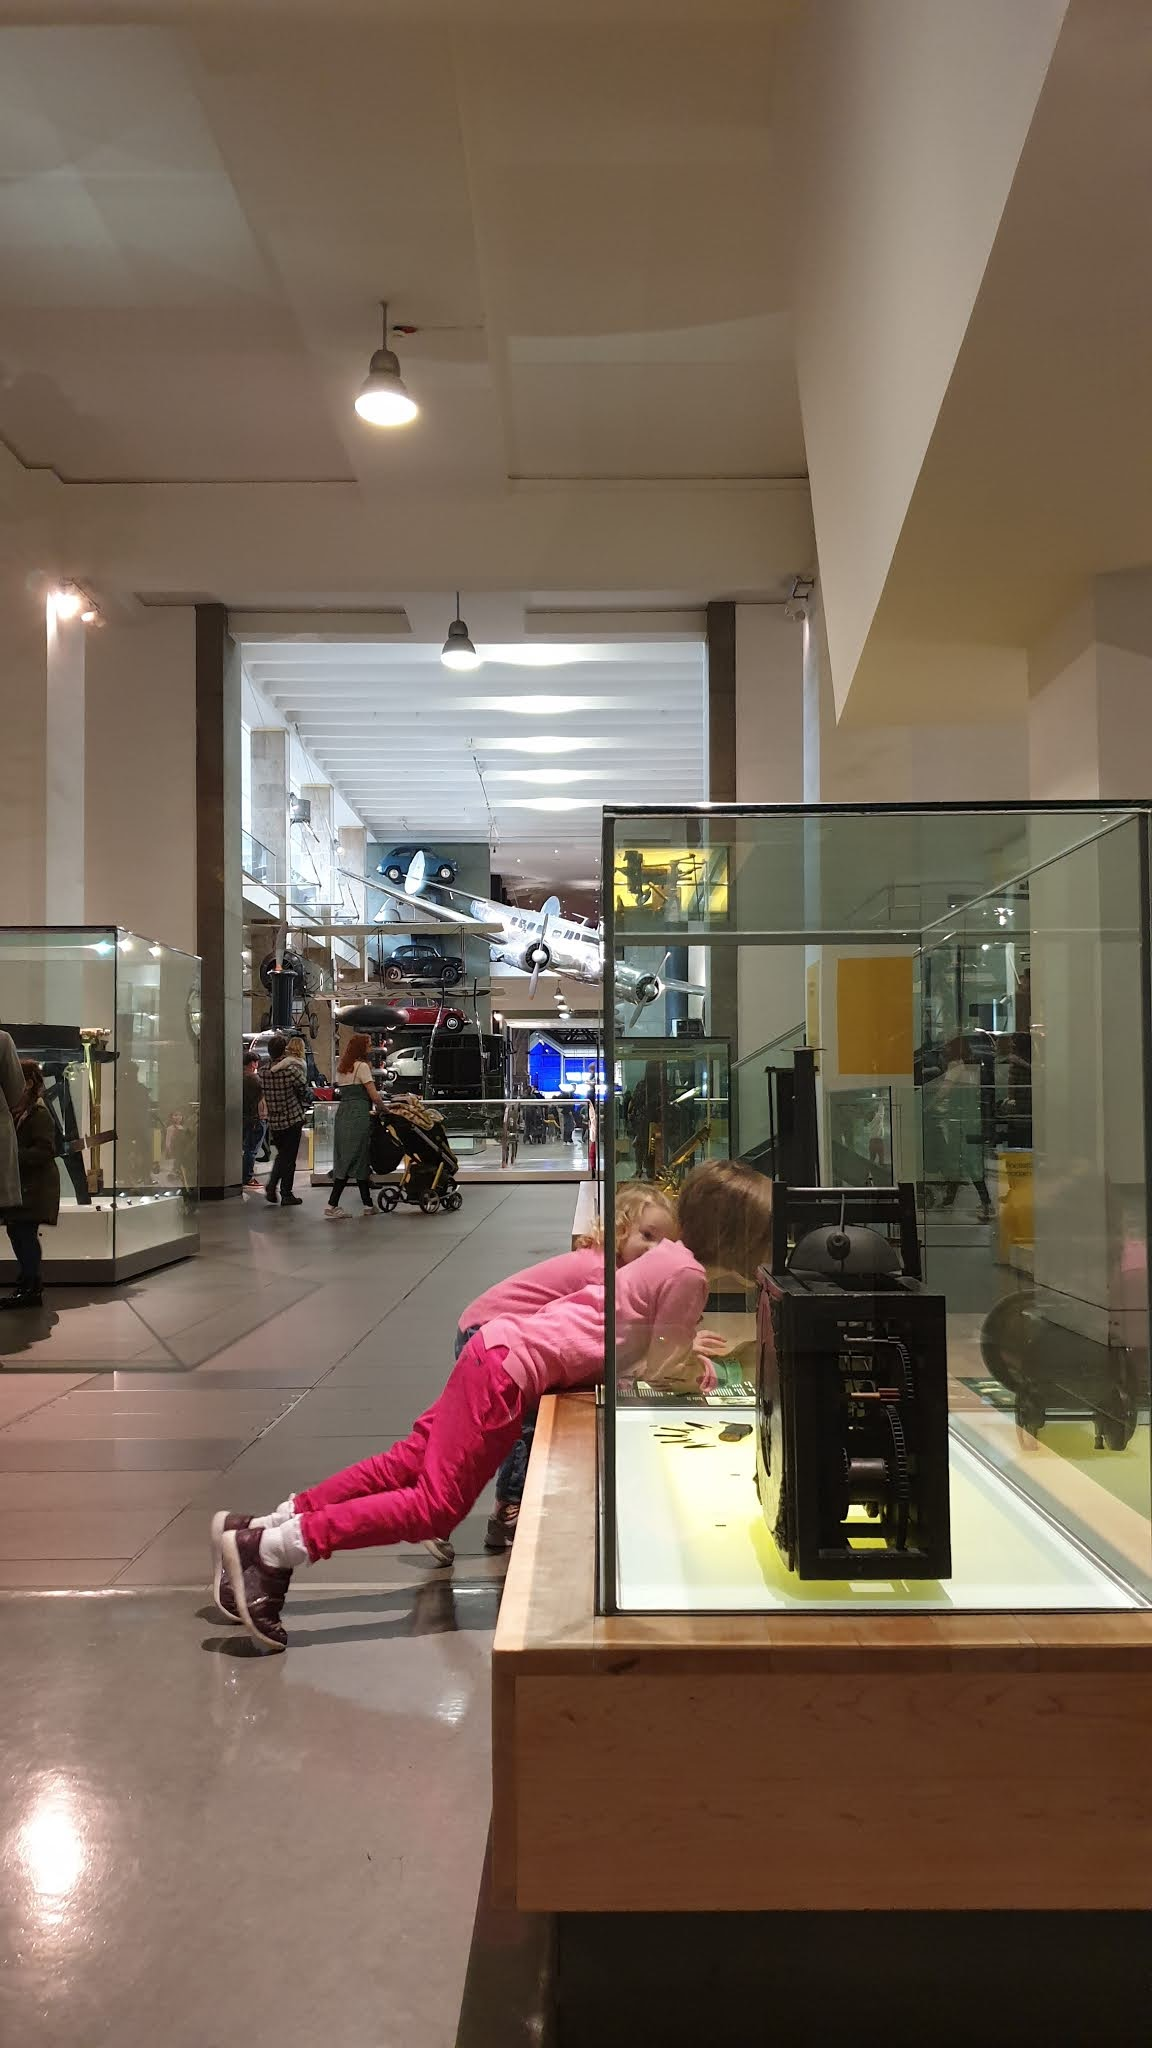 kids at science museum exhibitions